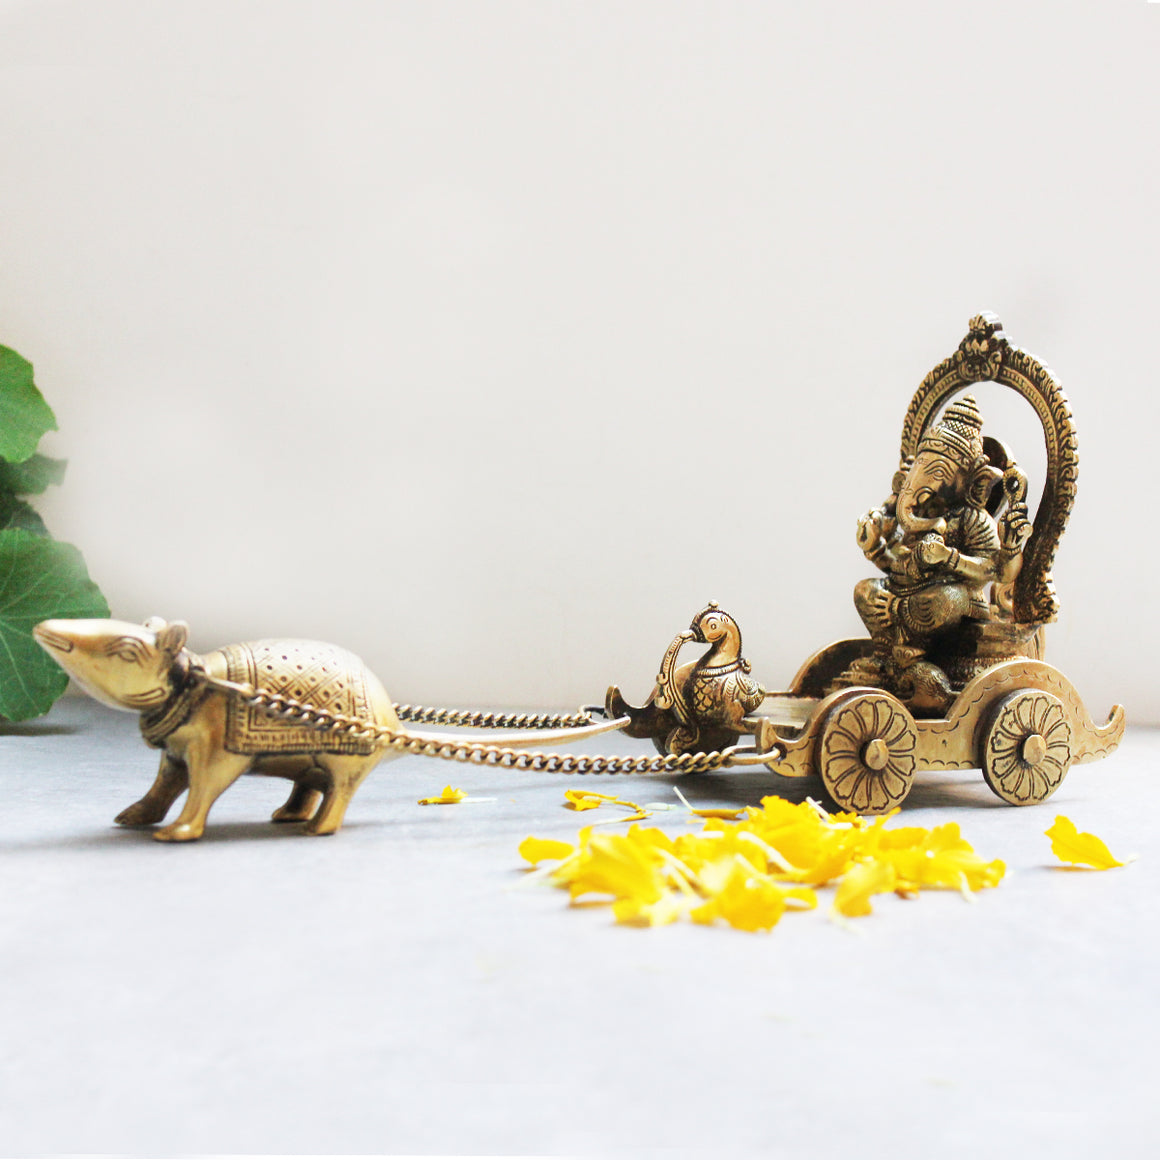 Vintage Brass Chariot Of Lord Ganesha Driven By His Vahan - The Mouse. L 36 cm x W 11 cm x Ht 16 cm